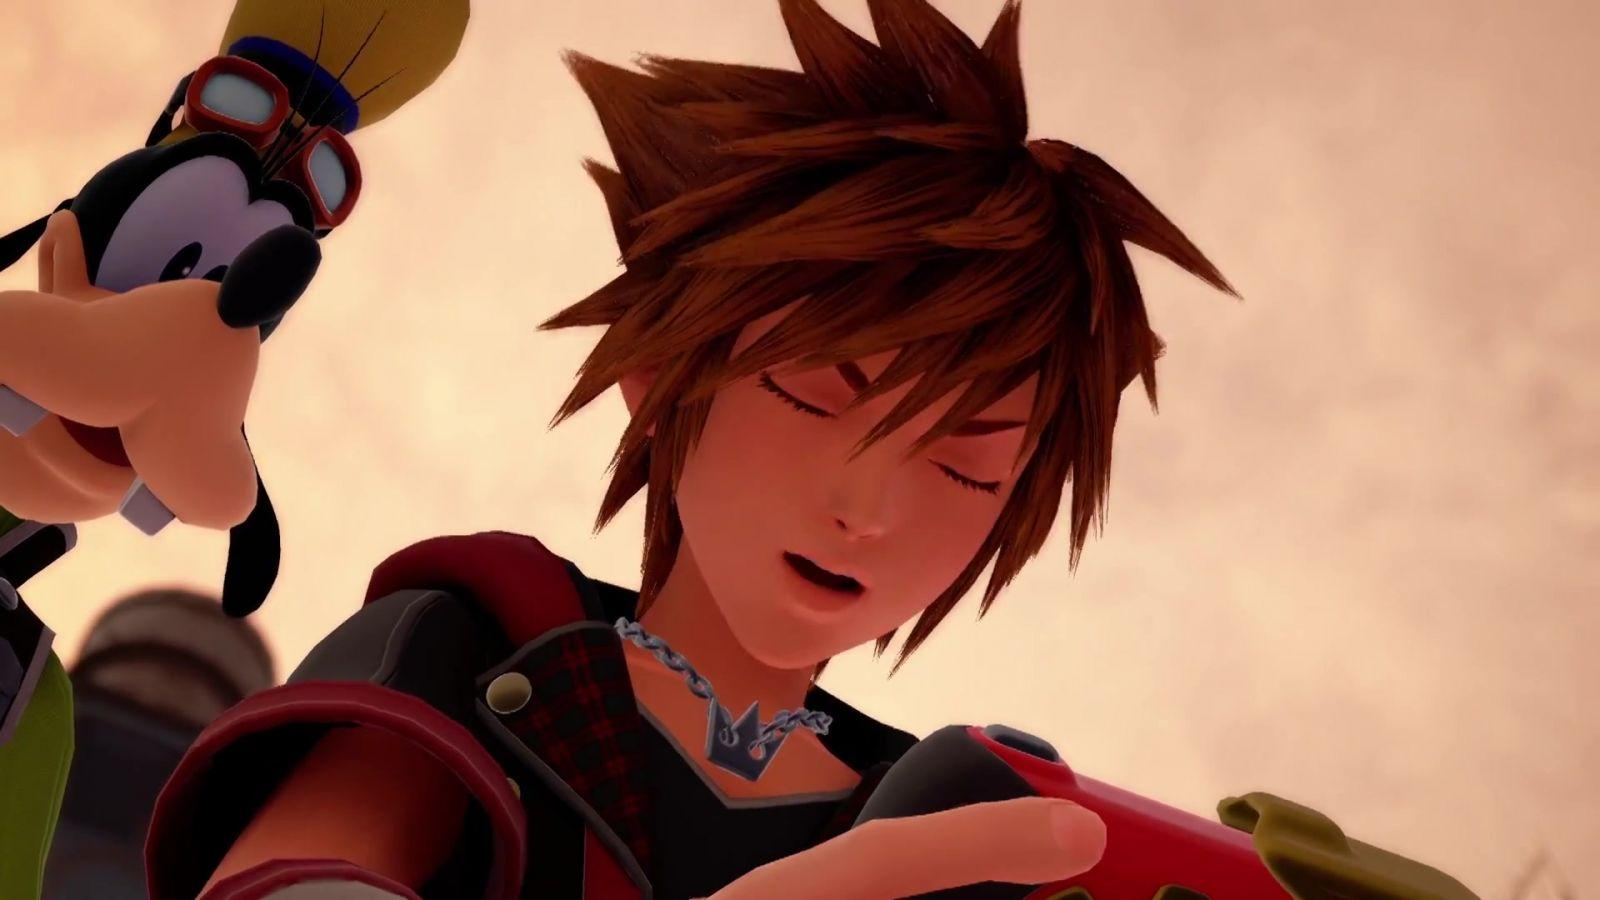 KINGDOM HEARTS III - CLASSIC KINGDOM Trailer 1669.jpg